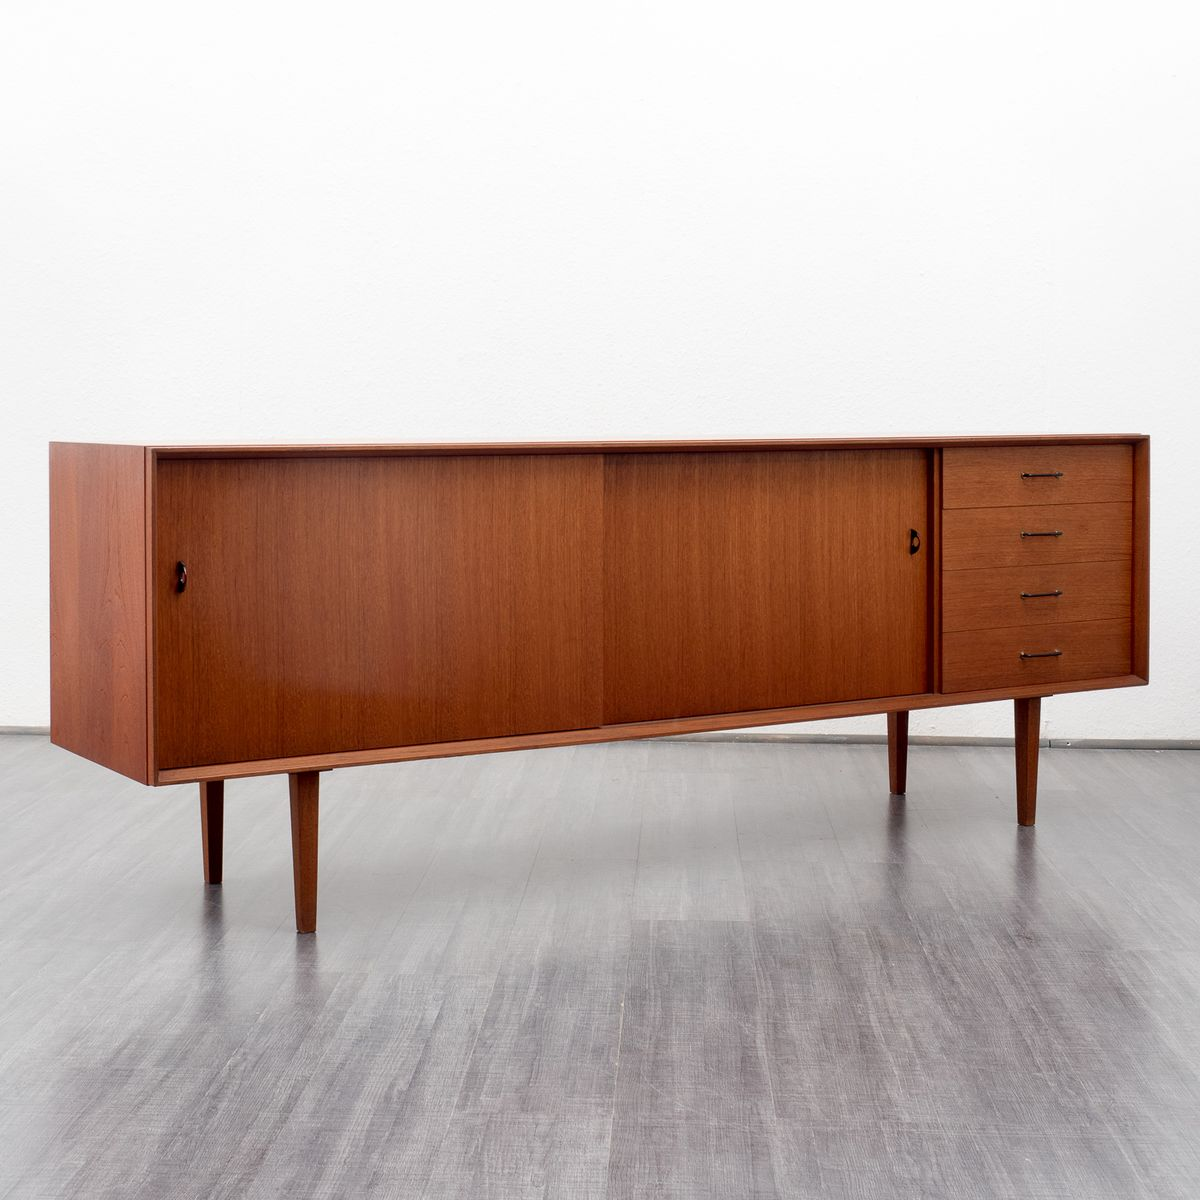 skandinavisches teak sideboard mit vier schubladen 1960er bei pamono kaufen. Black Bedroom Furniture Sets. Home Design Ideas